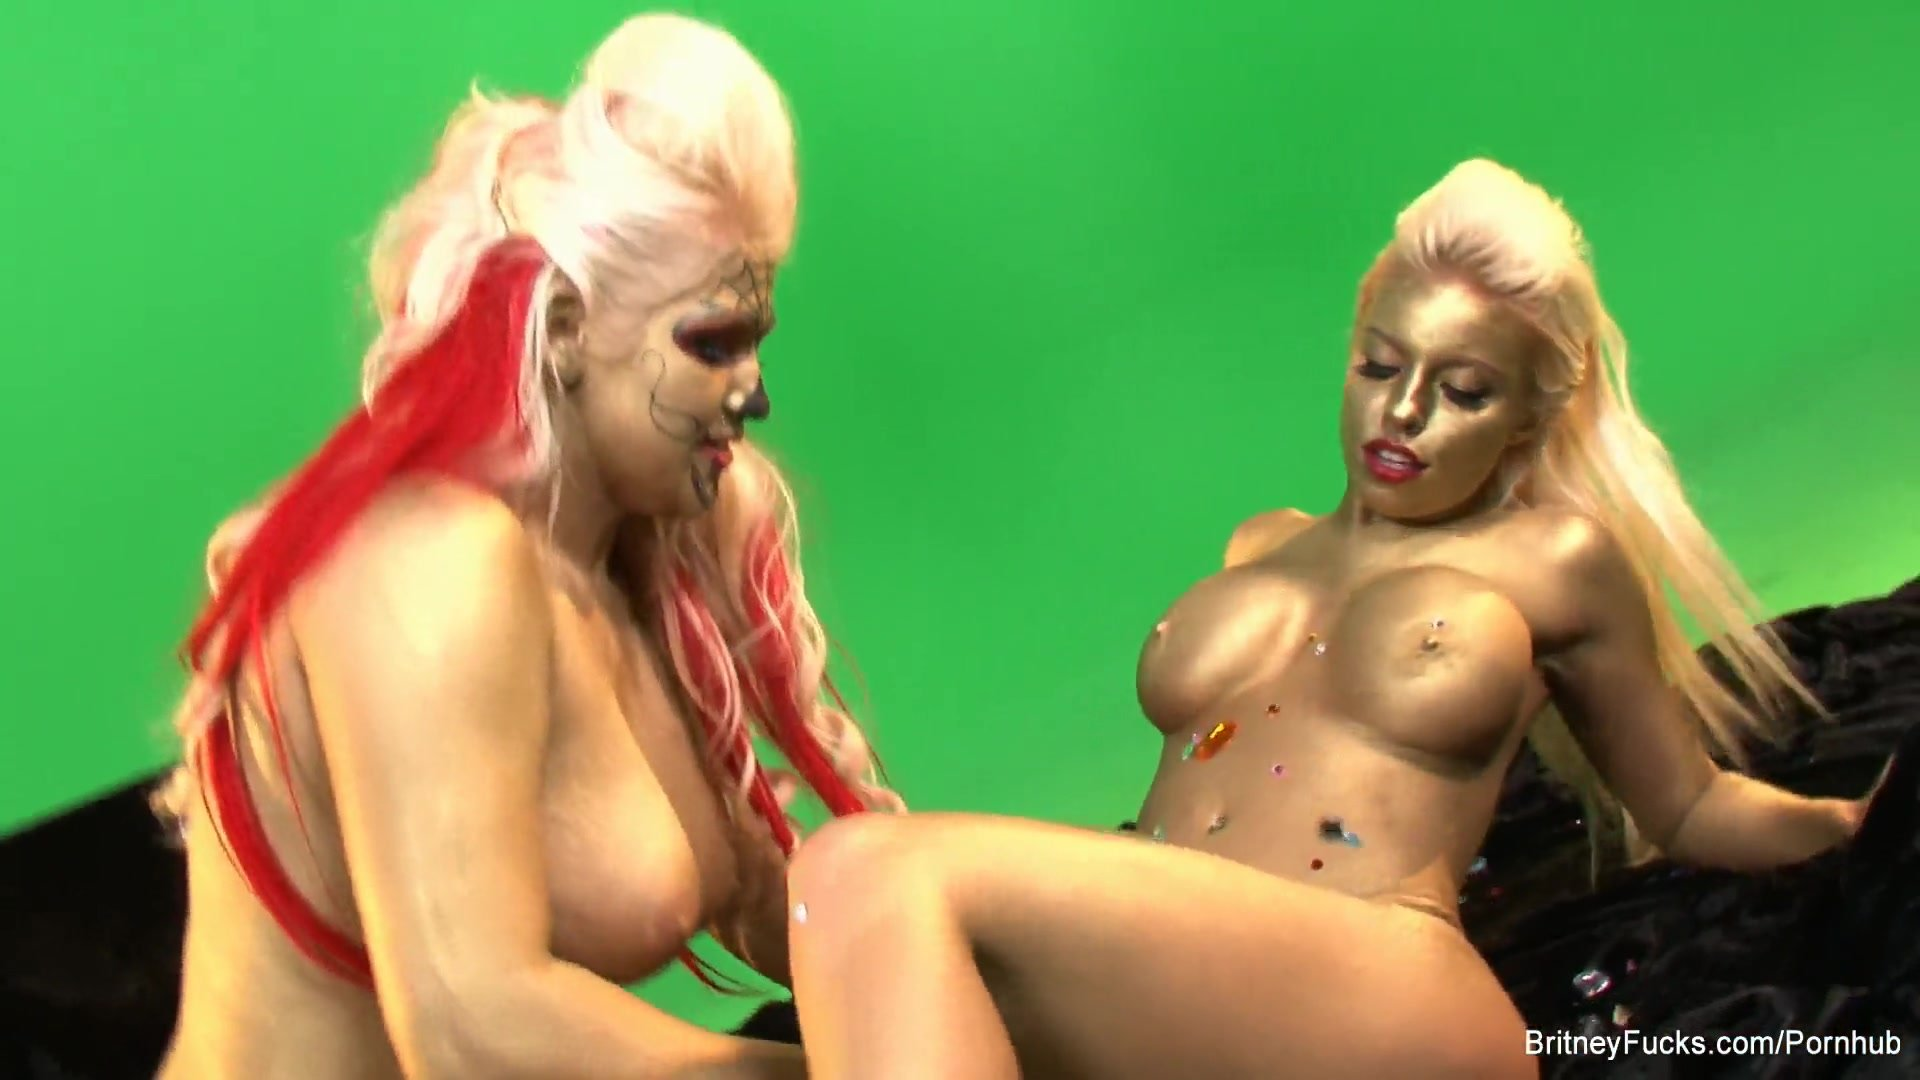 Britney and Nikki are painted gold and ready to fuck